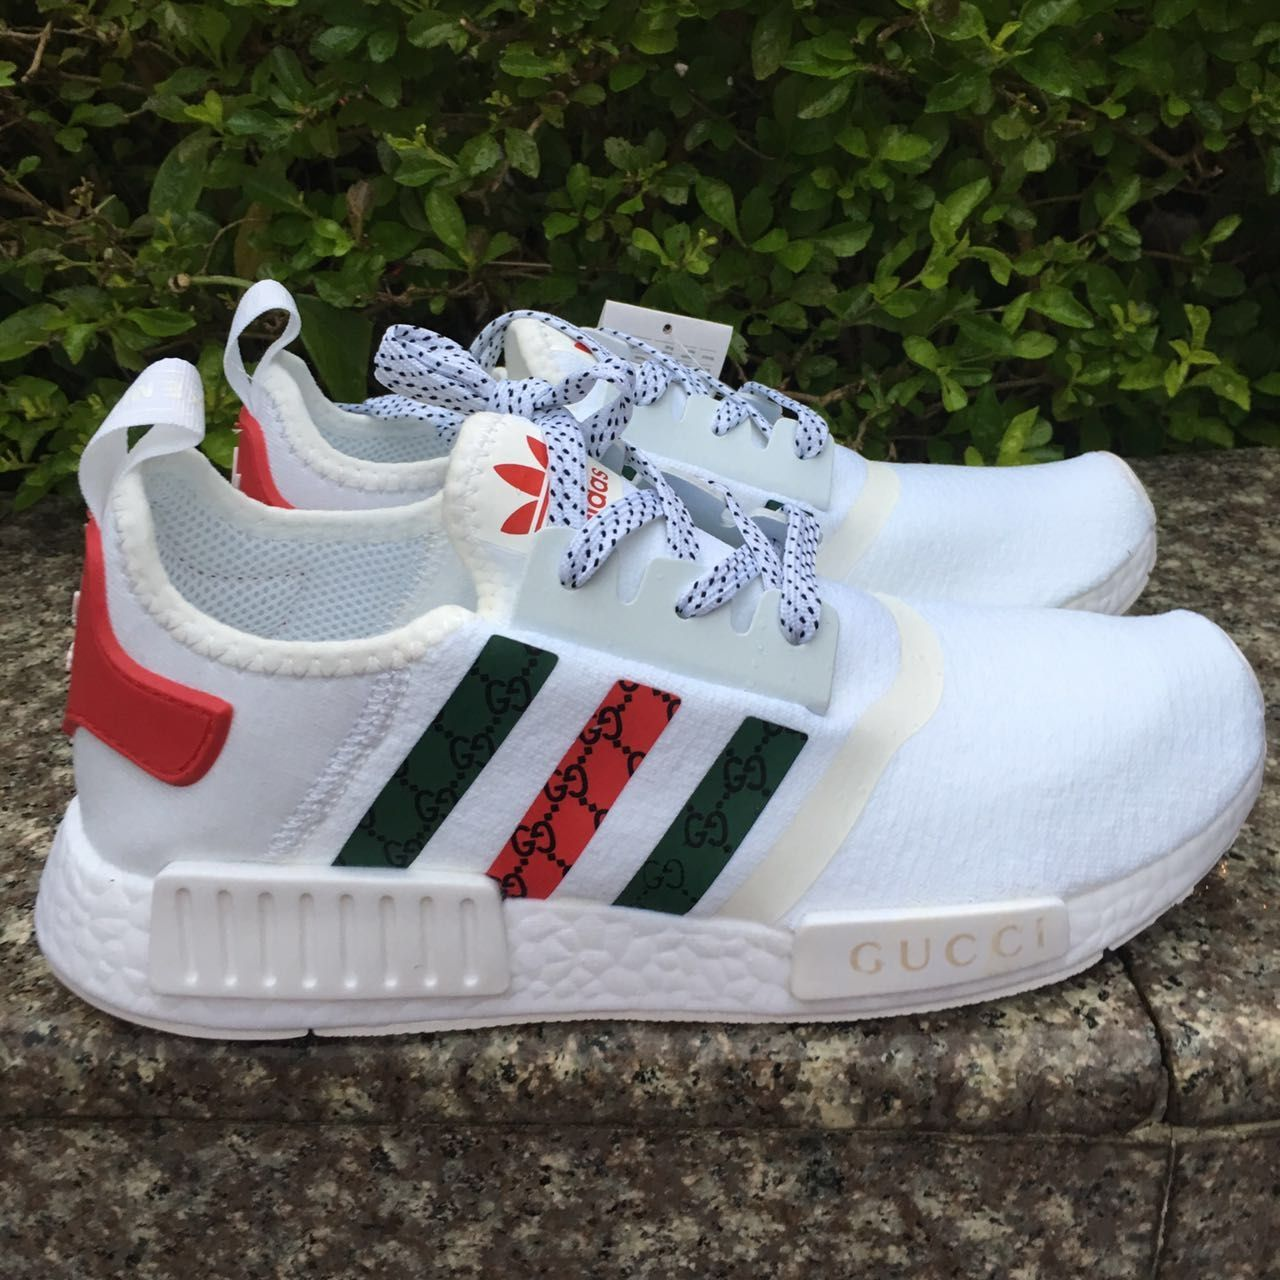 aa023d077203 custom paint womens adidas nmd casual shoes gucci style white color  athletic run sneakers with custom laces Note that this shoes also coming  with the ...